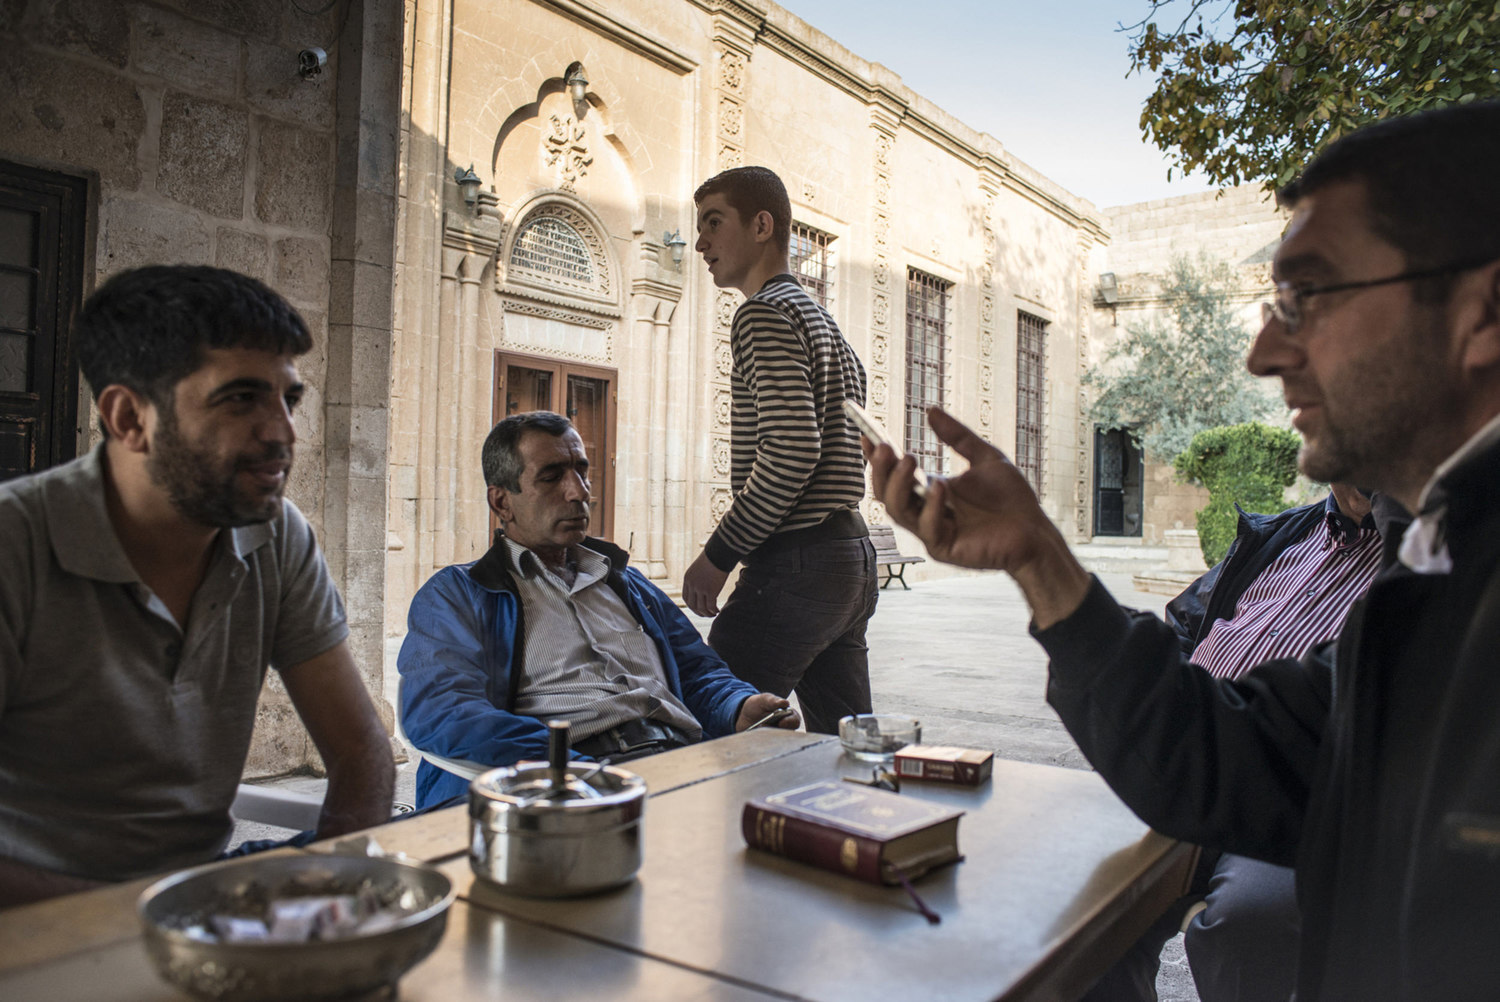 Decon  Ayhan Gürkan,(r) speaks to locals in the cortyard of Mor Barsaumo before teaching an Aramaic lesson on October 30th, 2014.